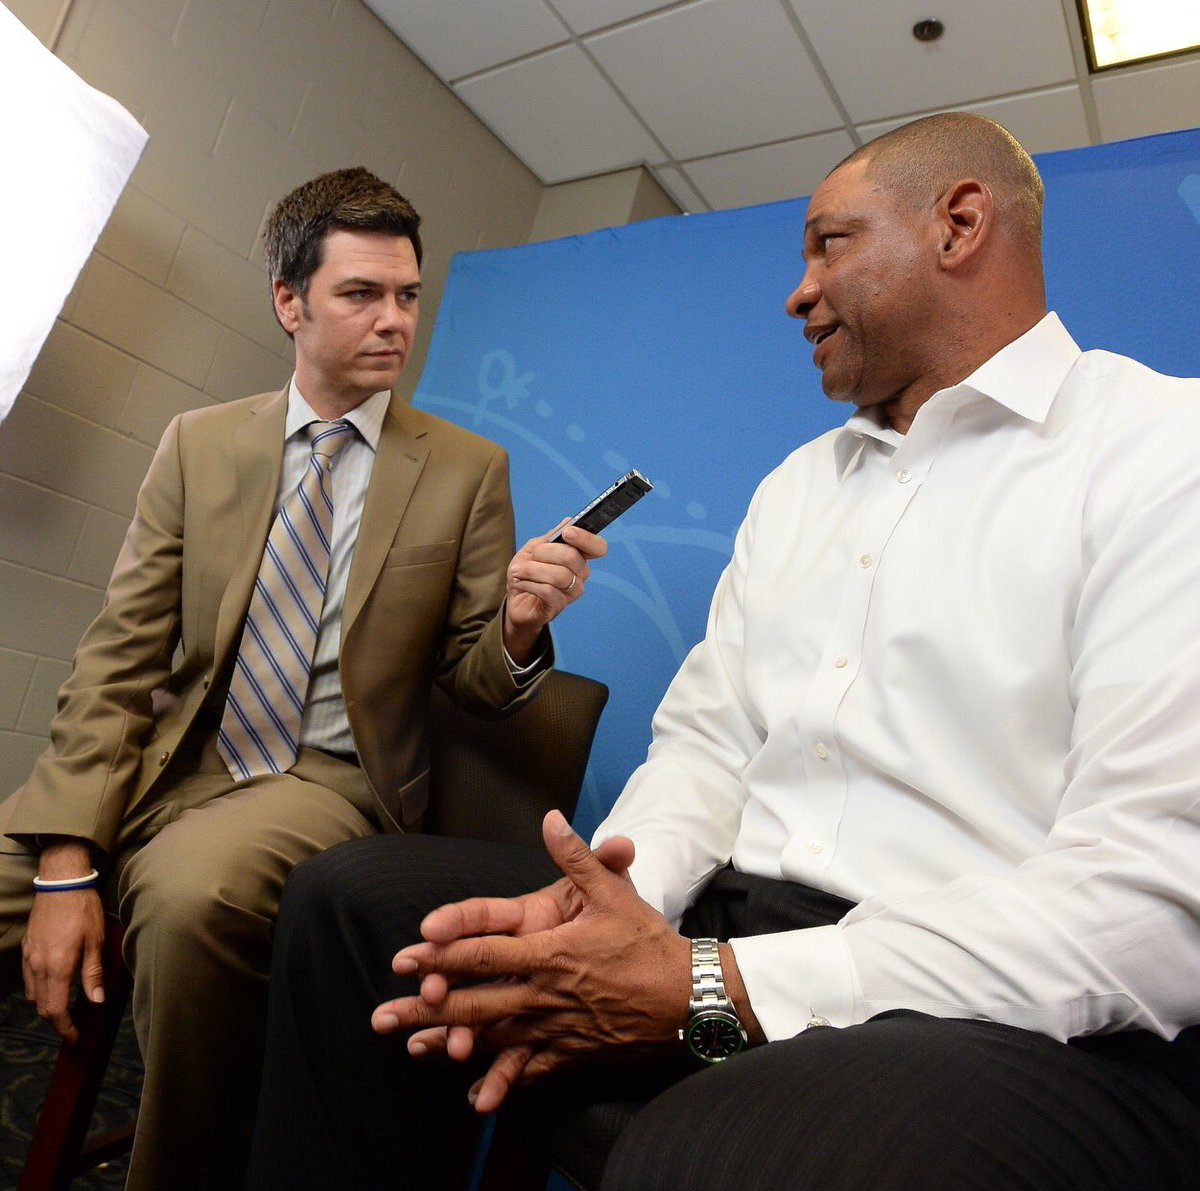 Sieman interviews Doc Rivers, head coach and president of the Los Angeles Clippers.